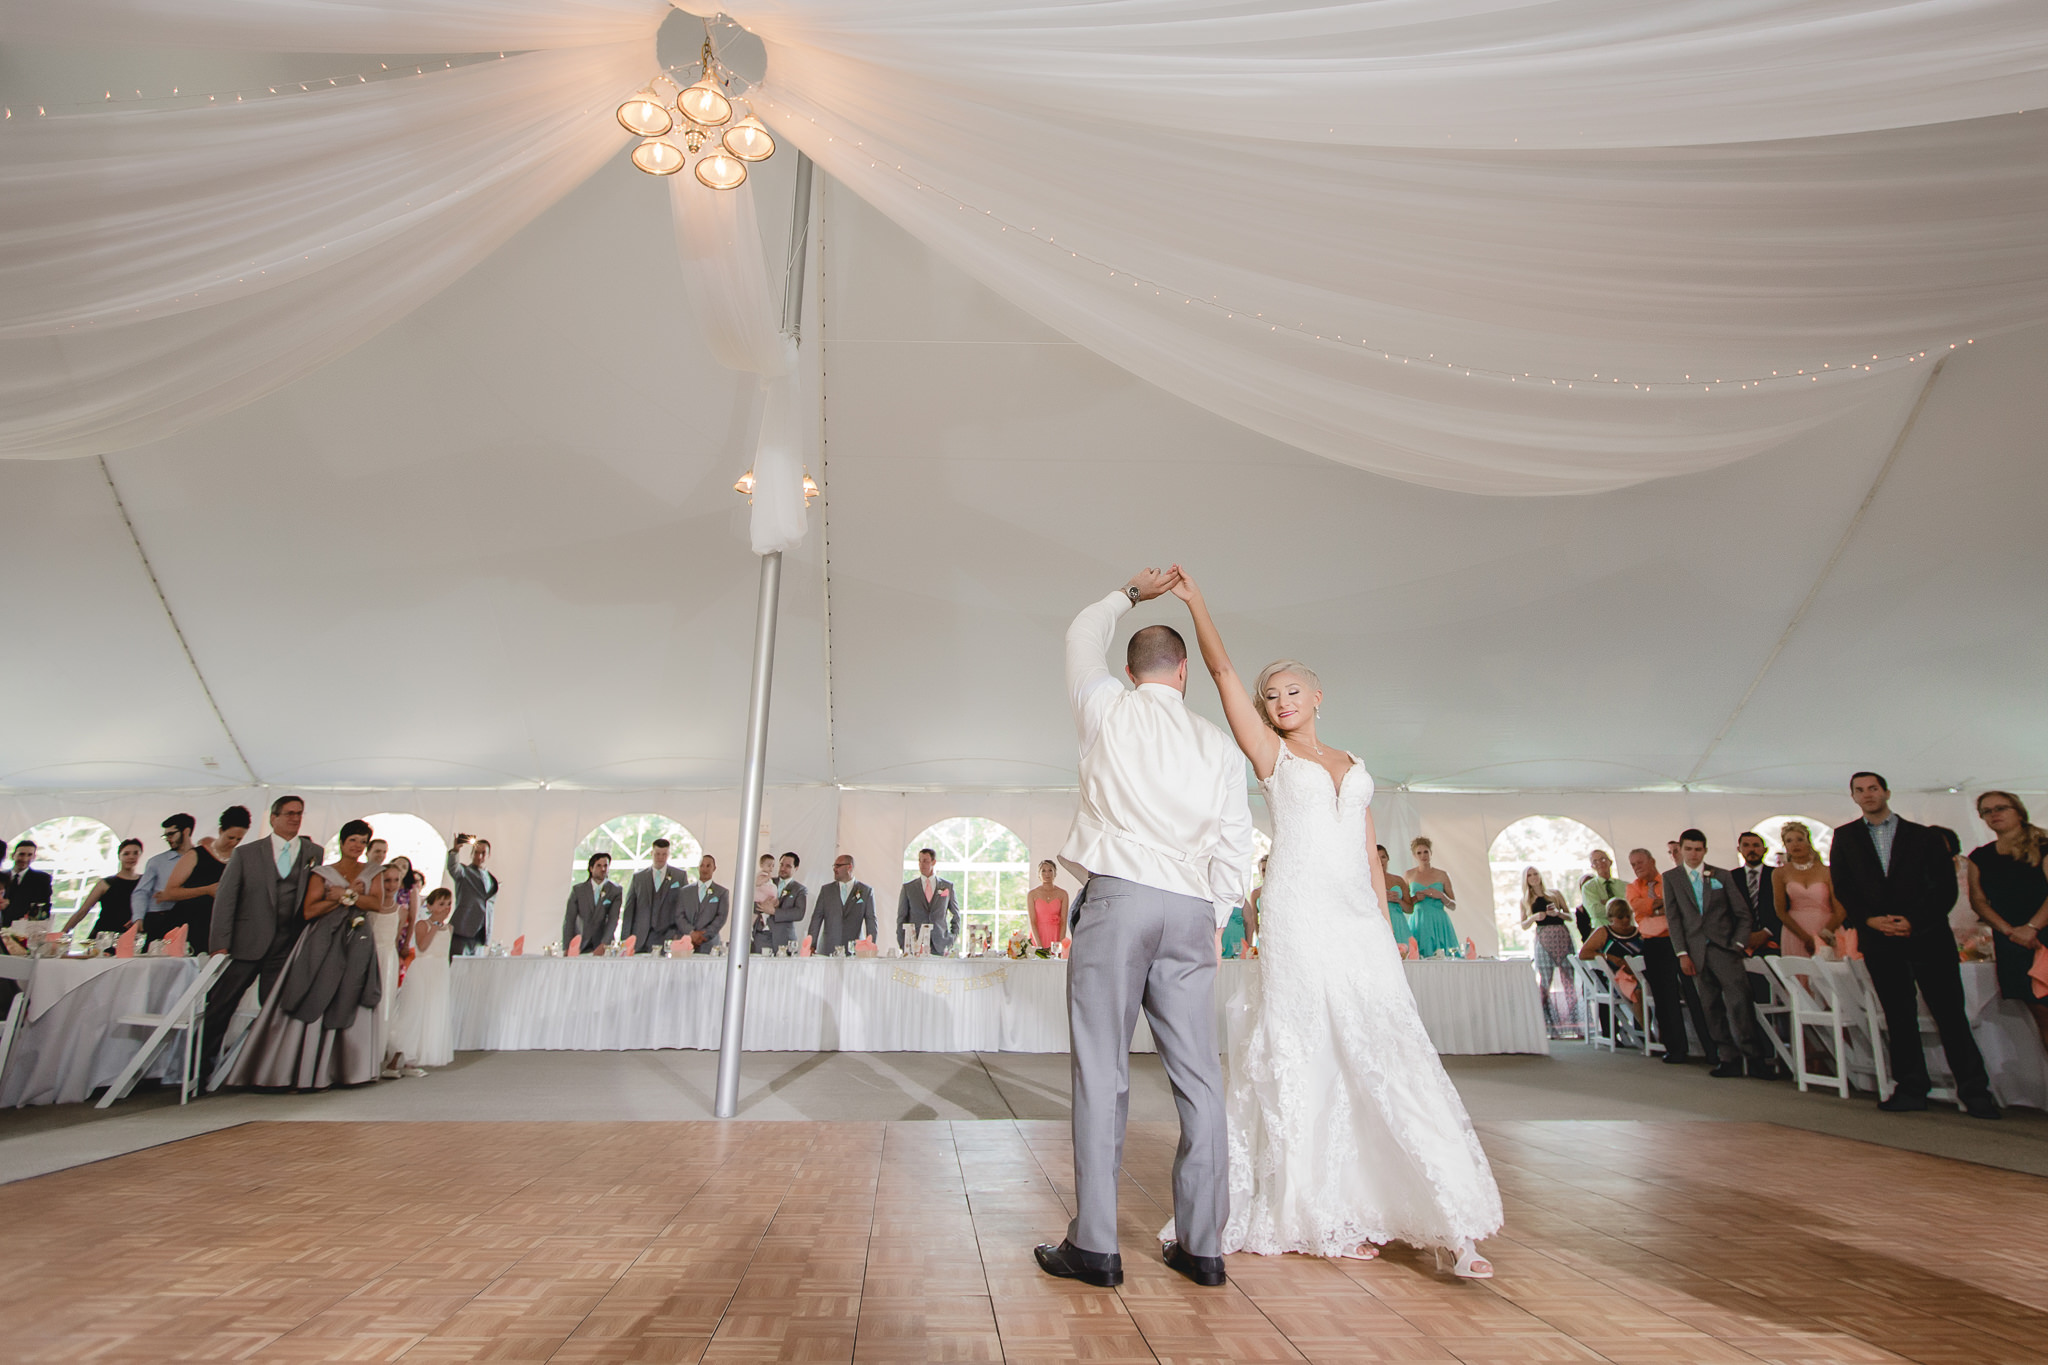 Bride and groom surprise guests with a choreographed dance